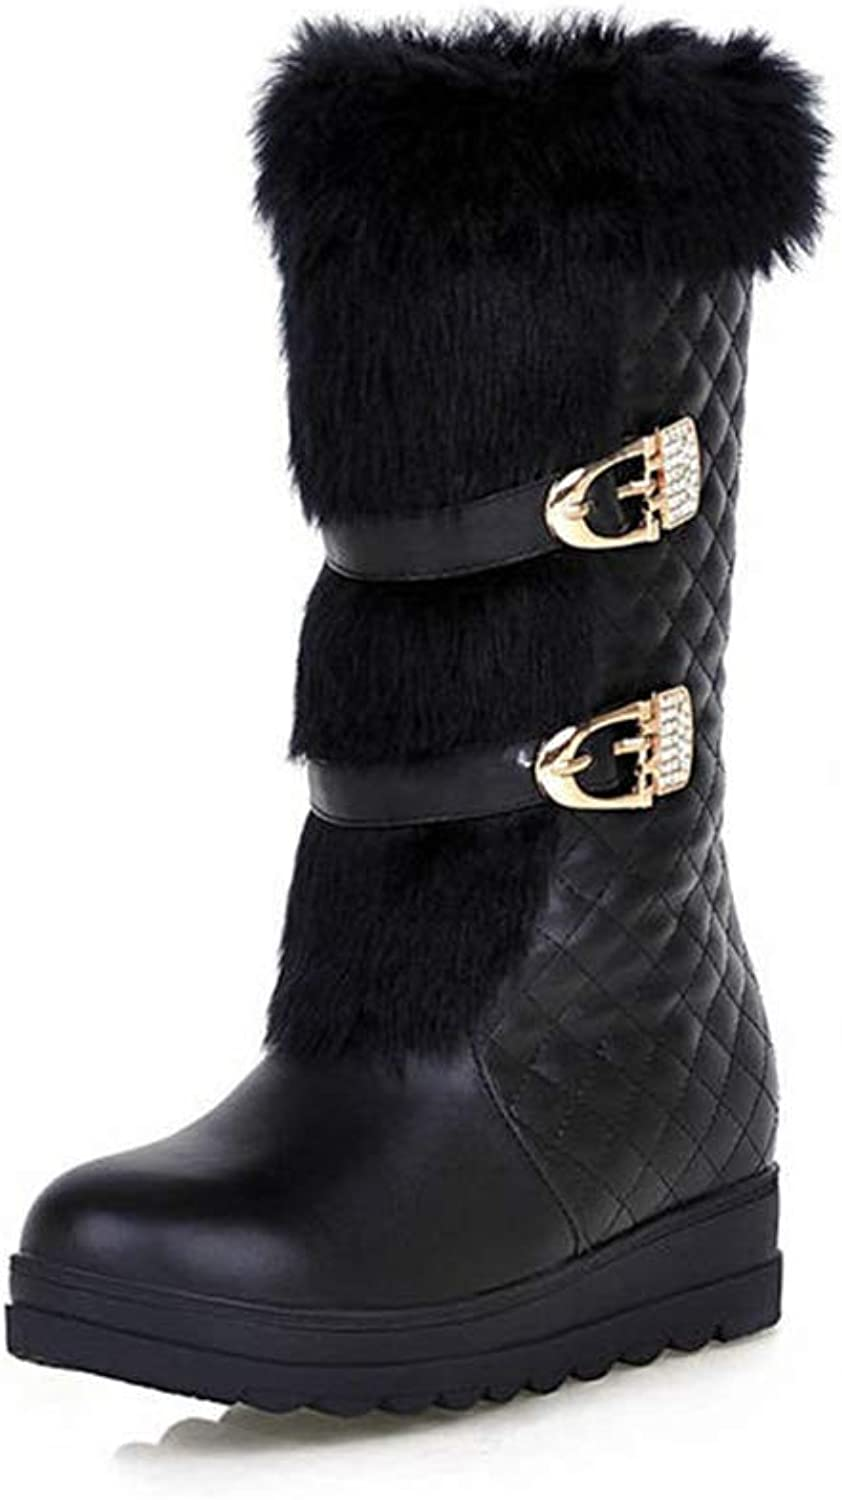 T-JULY Women's Ankle High Boots Sweet Round Toe Keep Warm Winter Snow Boots Buckle Simple Fashion Casual shoes